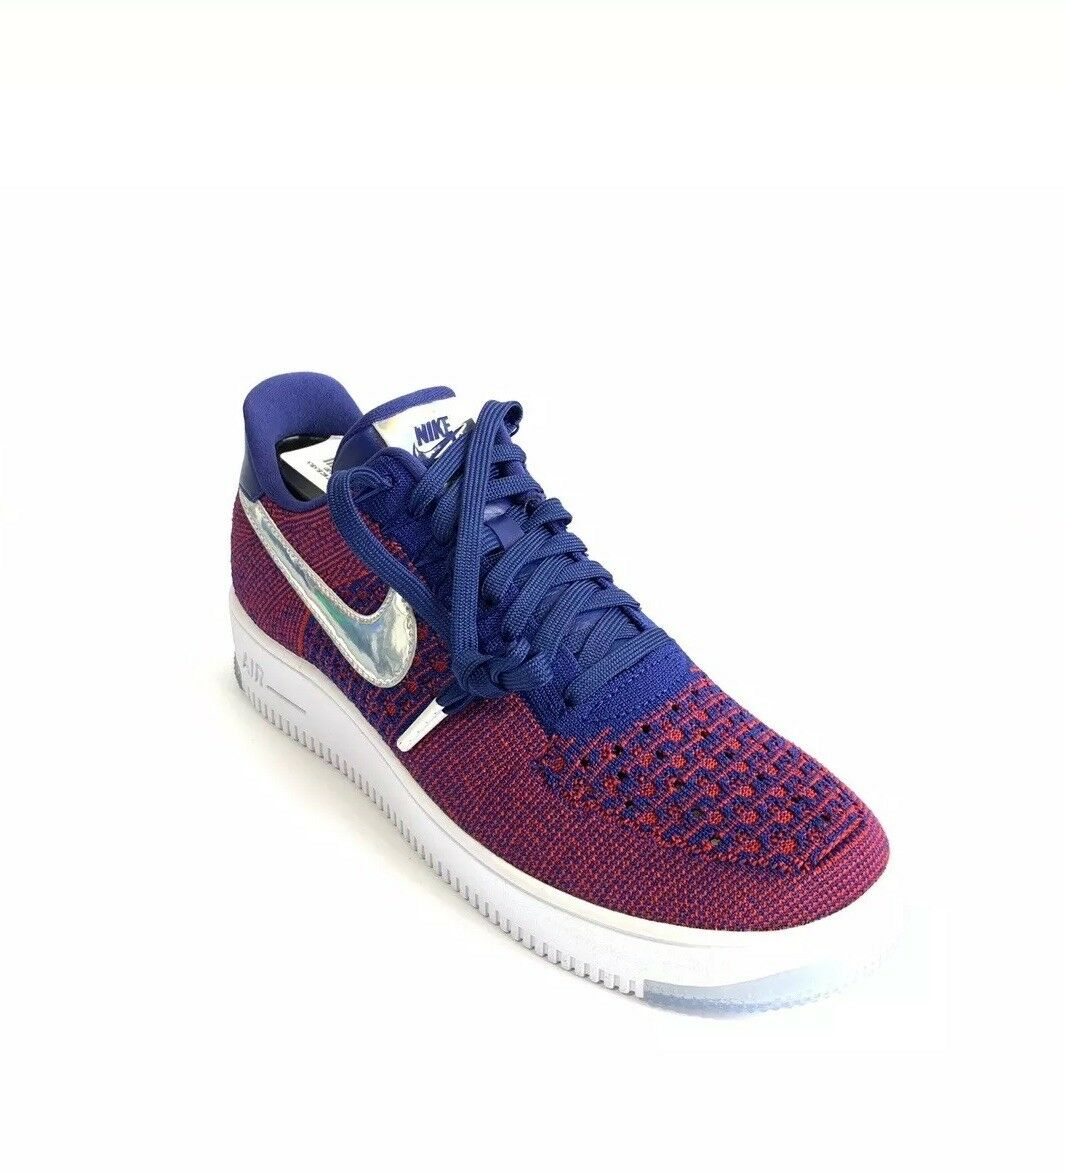 Nike Air Force 1 Low Ultra Flyknit Size 10 USA Olympic Red White bluee 826577-601